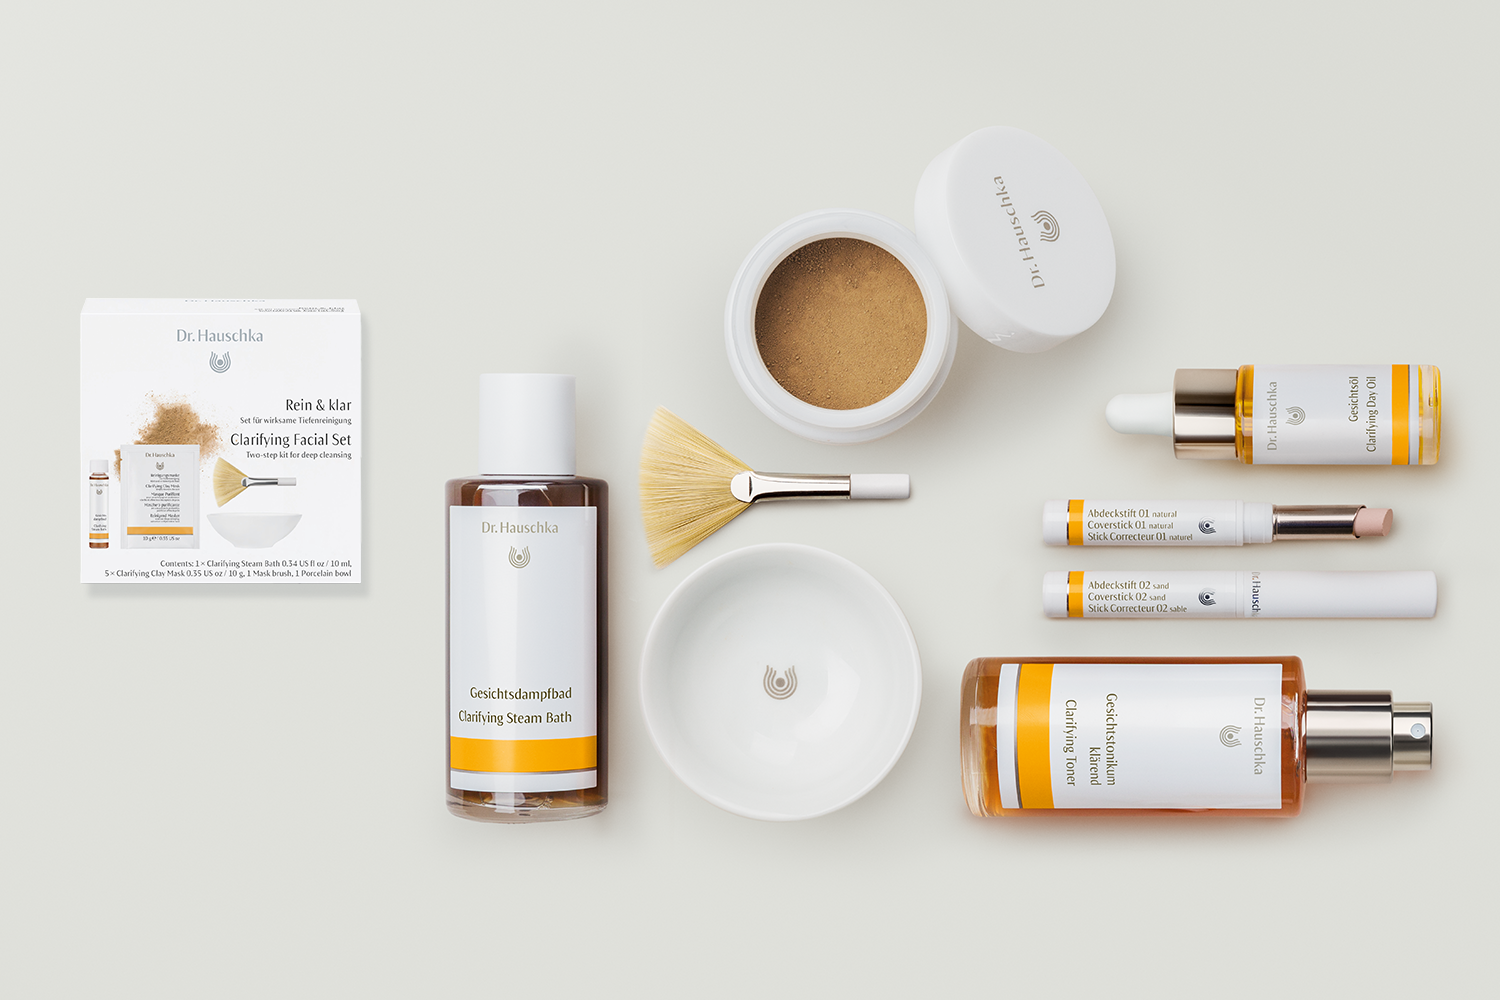 Dr. Hauschka NEW ARRIVALS for clear skin! - 1) NEW limited edition Clarifying Facial Set RRP $452) NEW price point, NEW size with pipette Clarifying Day Oil RRP $573) NEW improved formula and shades Coverstick 01-02 RRP $35